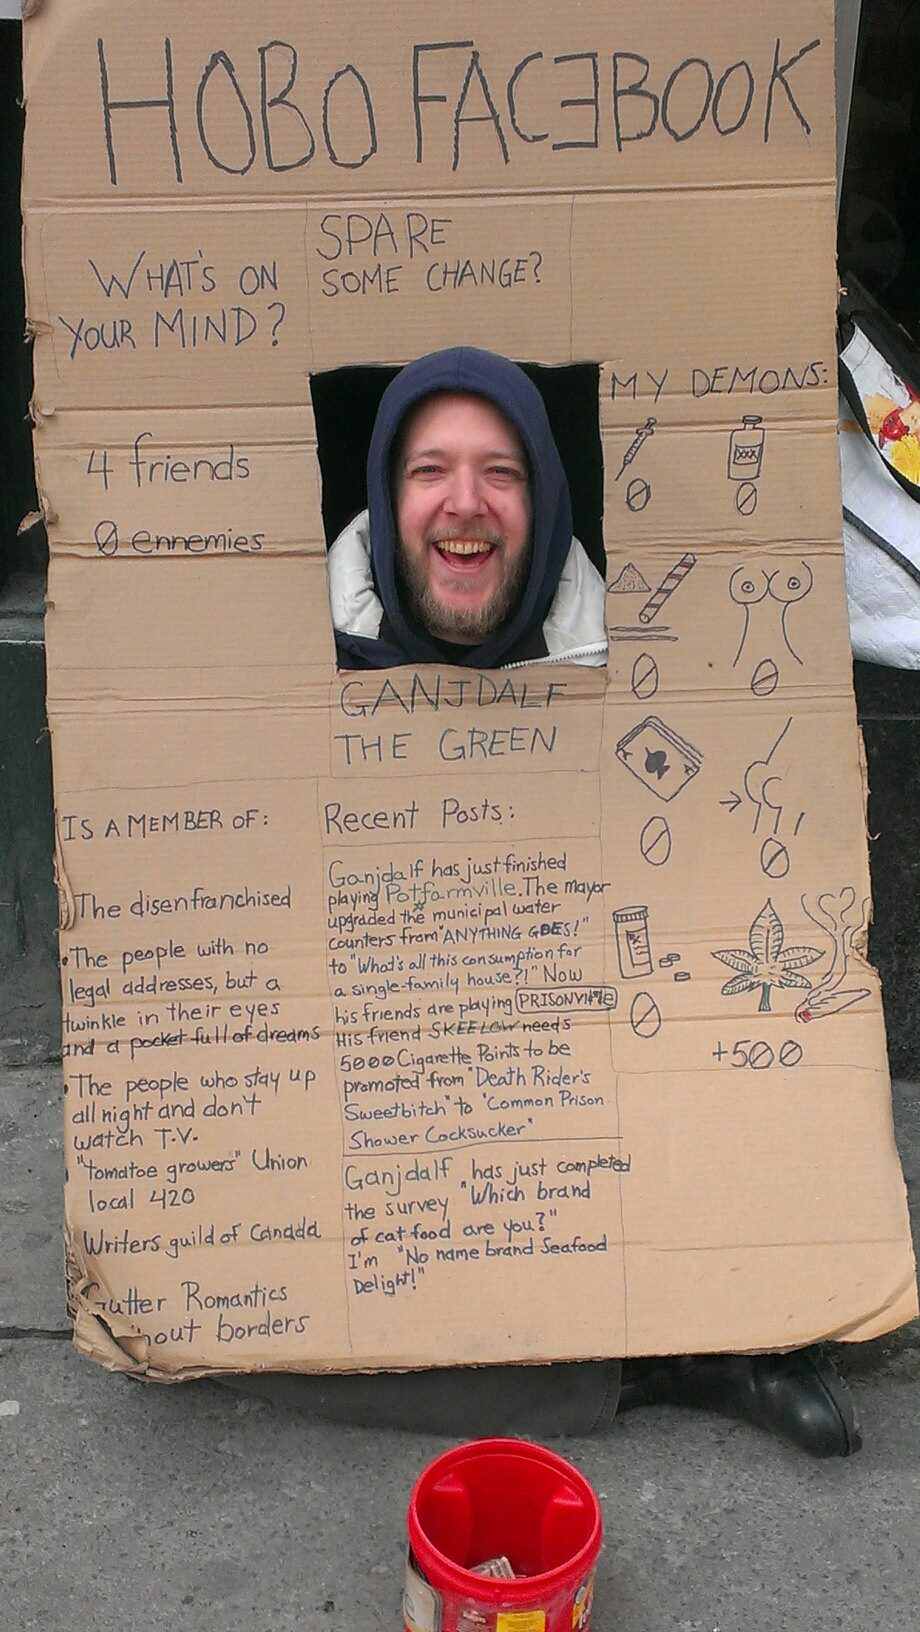 Homeless man's cardboard Facebook page is more entertaining than all of Facebook.